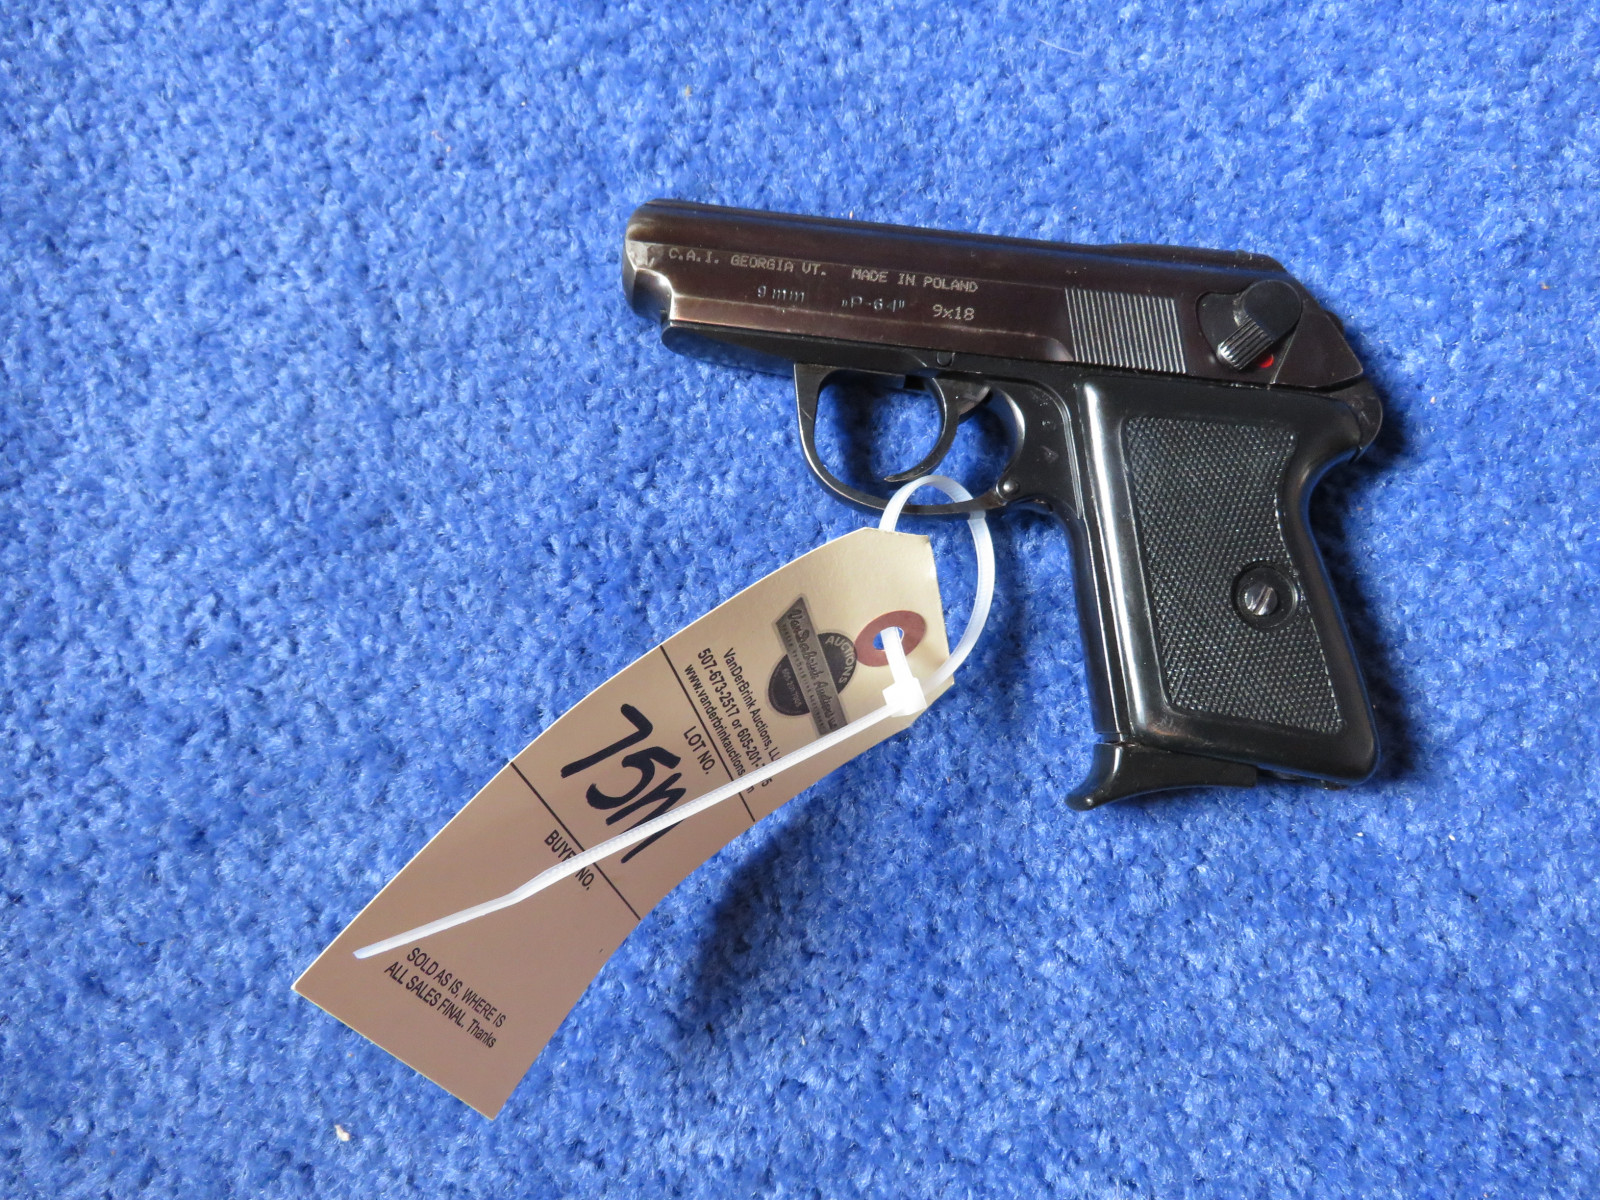 CAI P-64  9mm handgun - Image 2